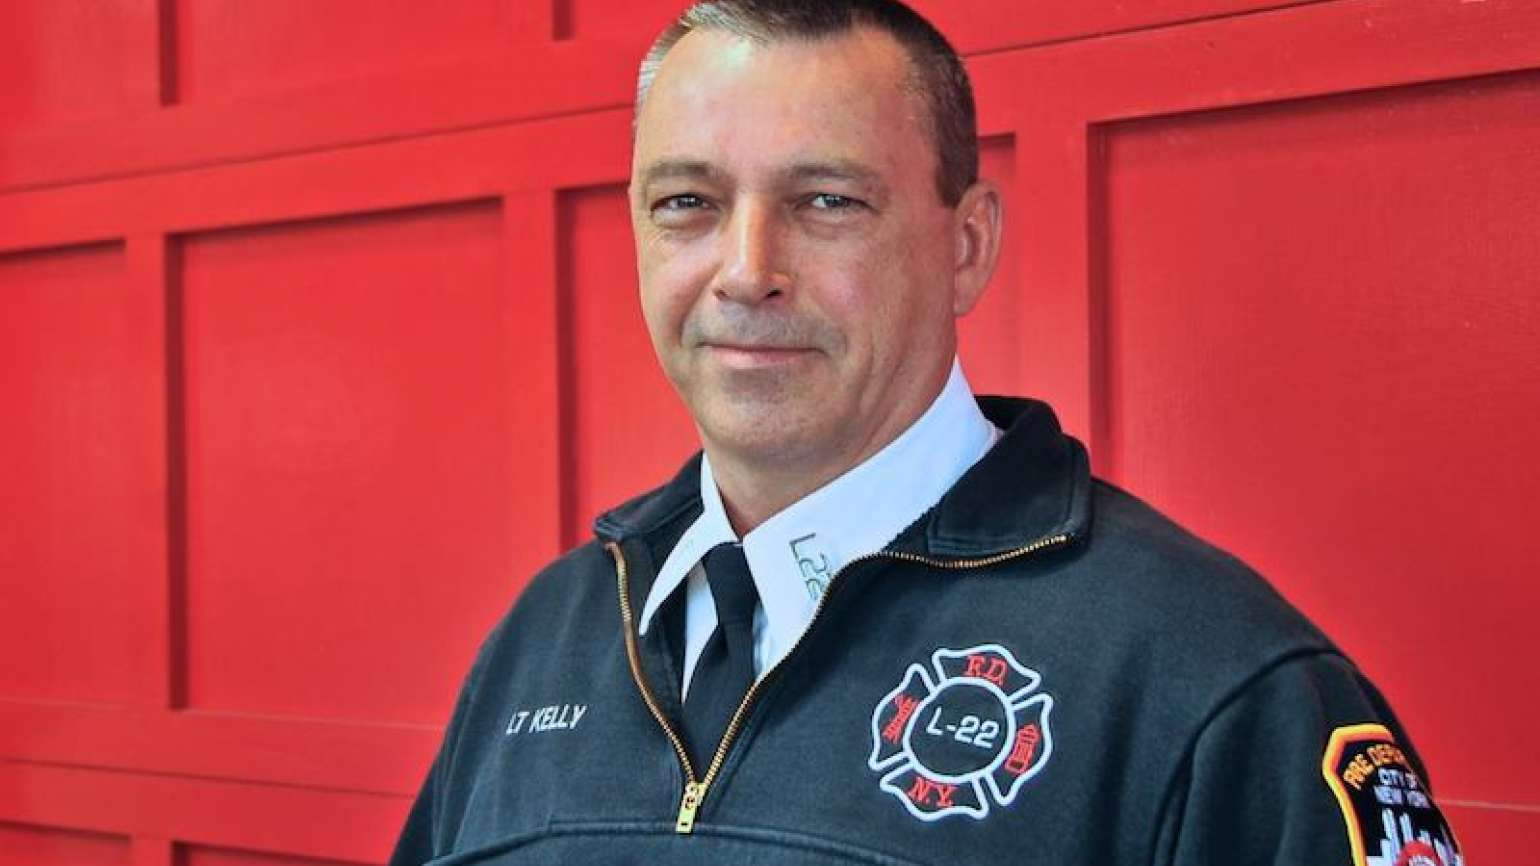 FDNY Lt. David Kelly. Photo: FDNY